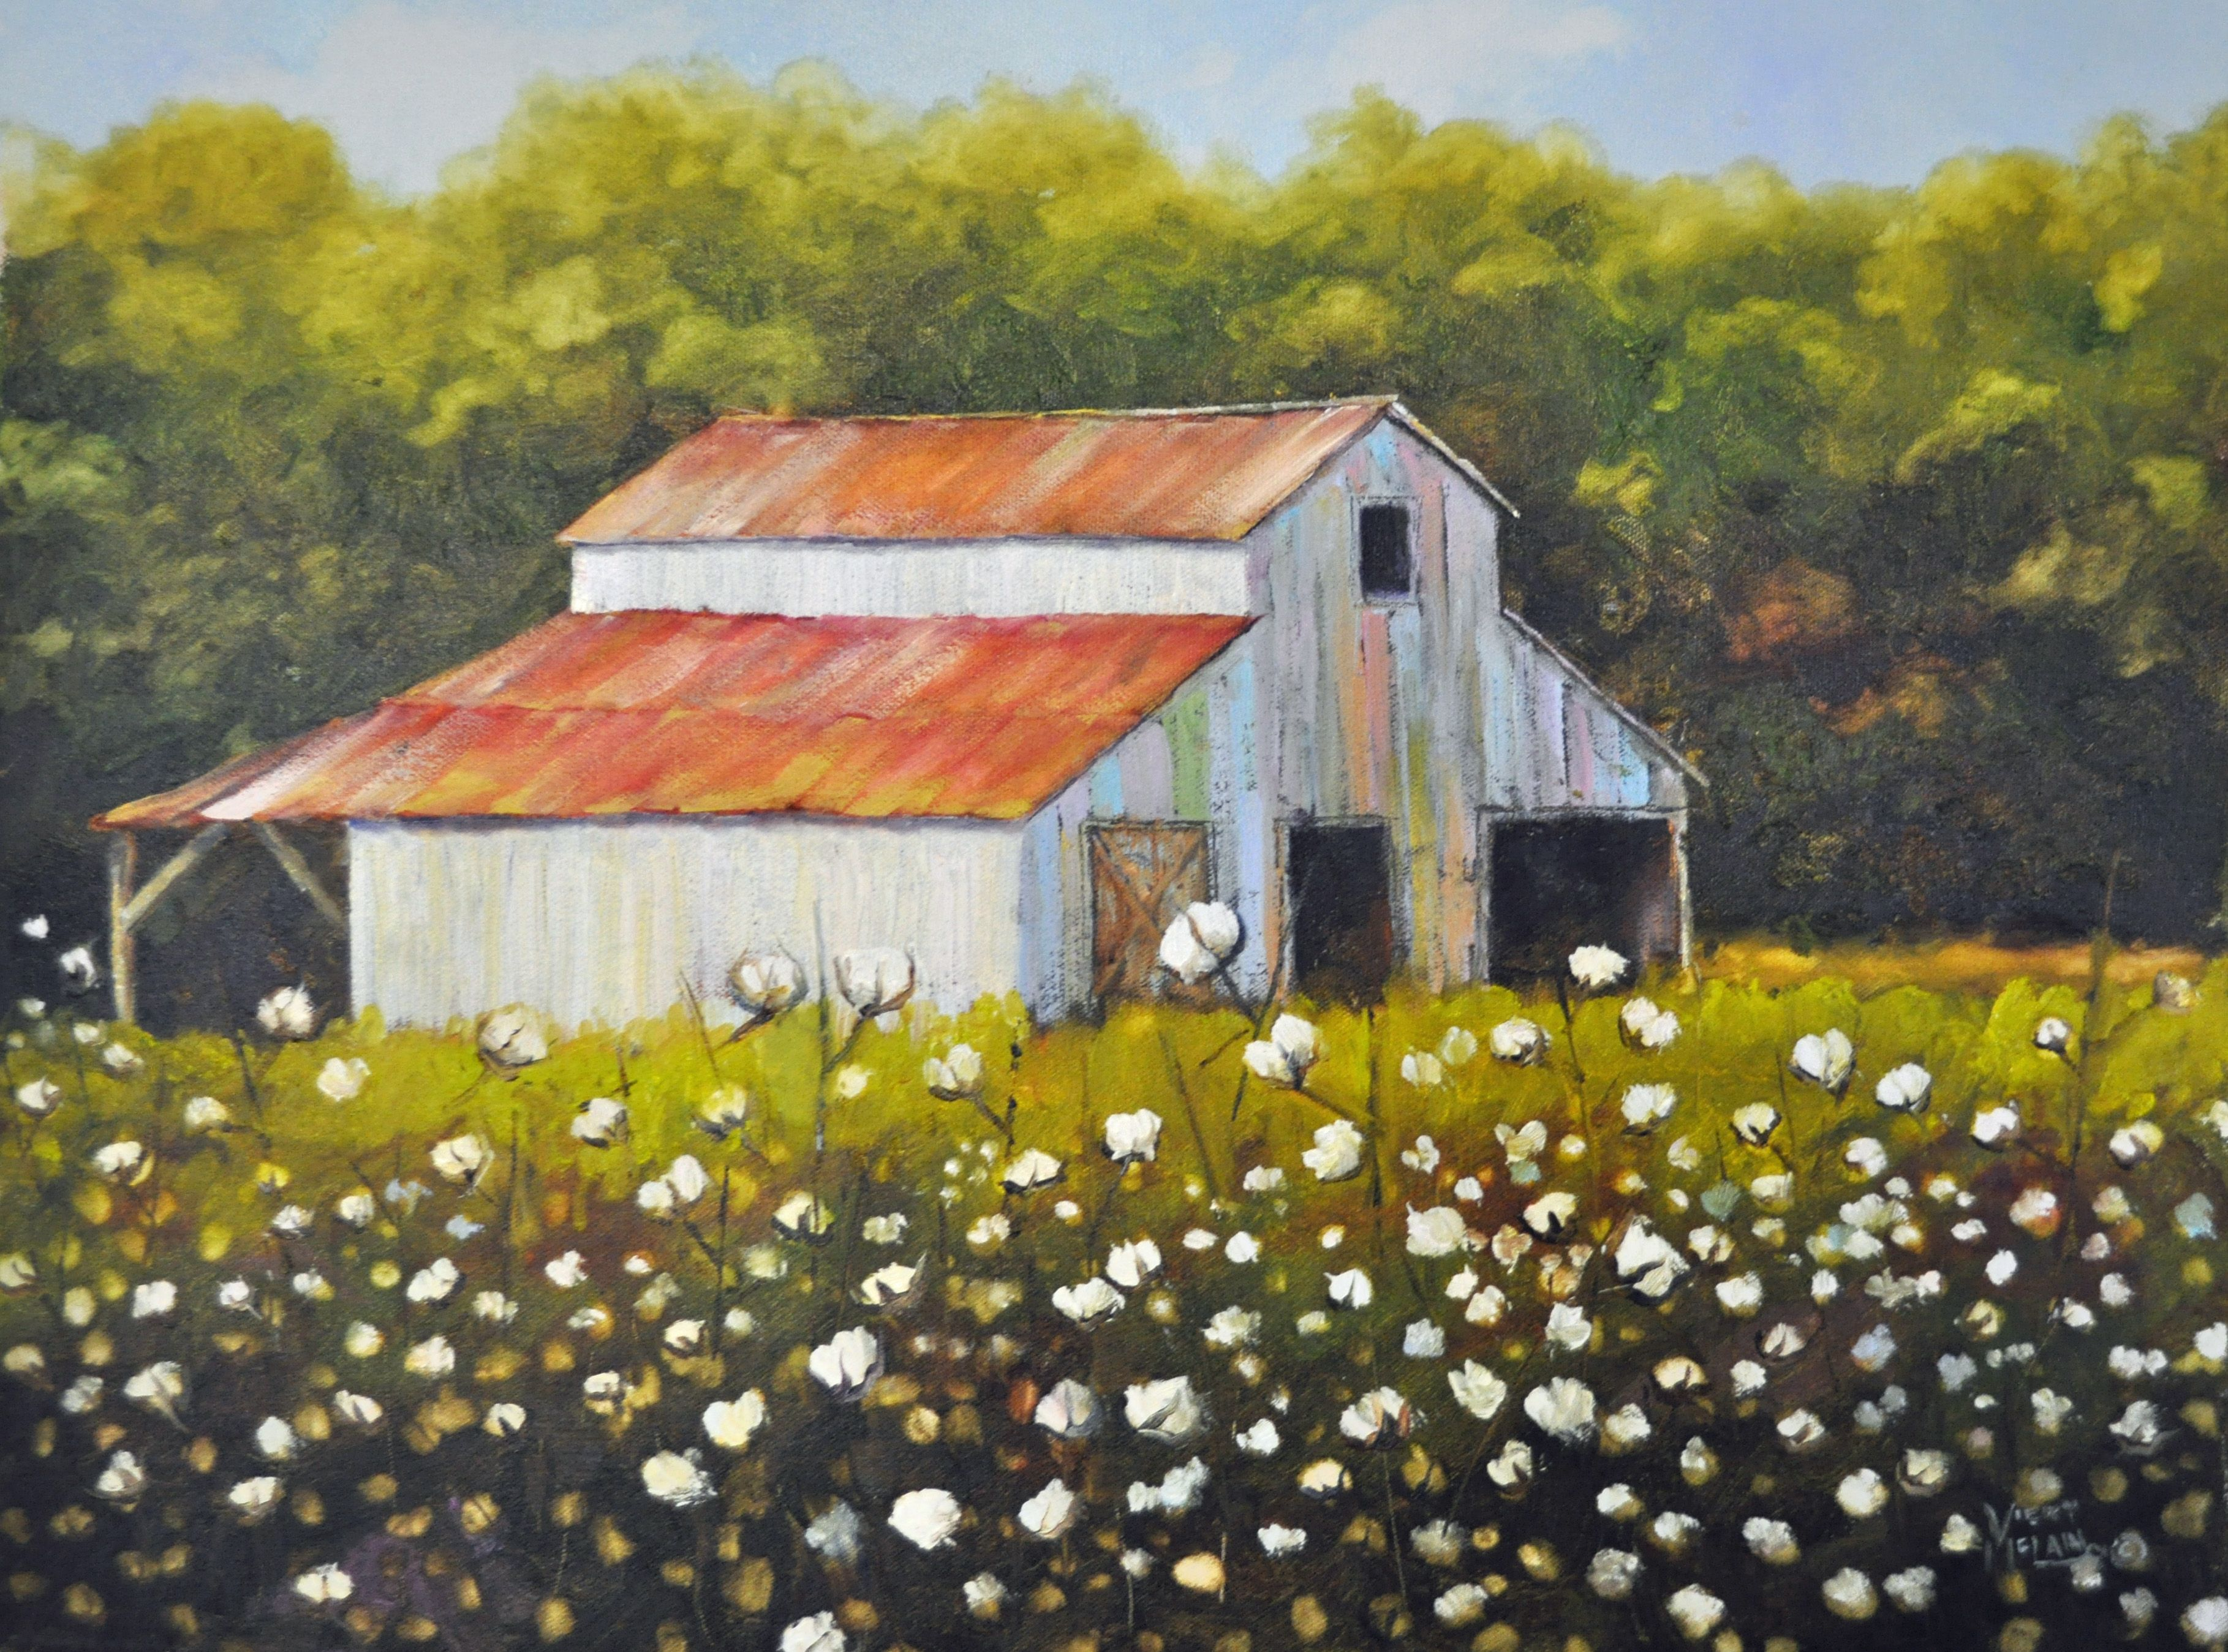 Rustic Canvas Painting Ideas Cotton Field With Barn Cotton Field Painting Barn Cotton